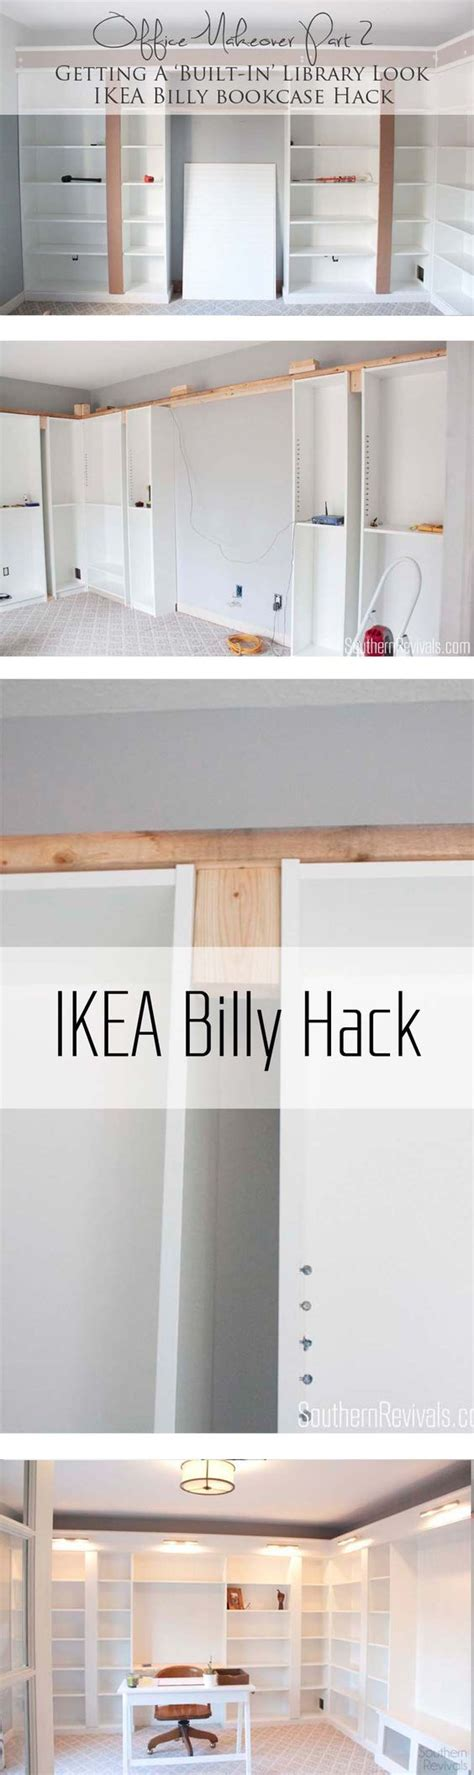 ikea hacks van and hacks on pinterest billy bookcases ikea hacks and library home on pinterest